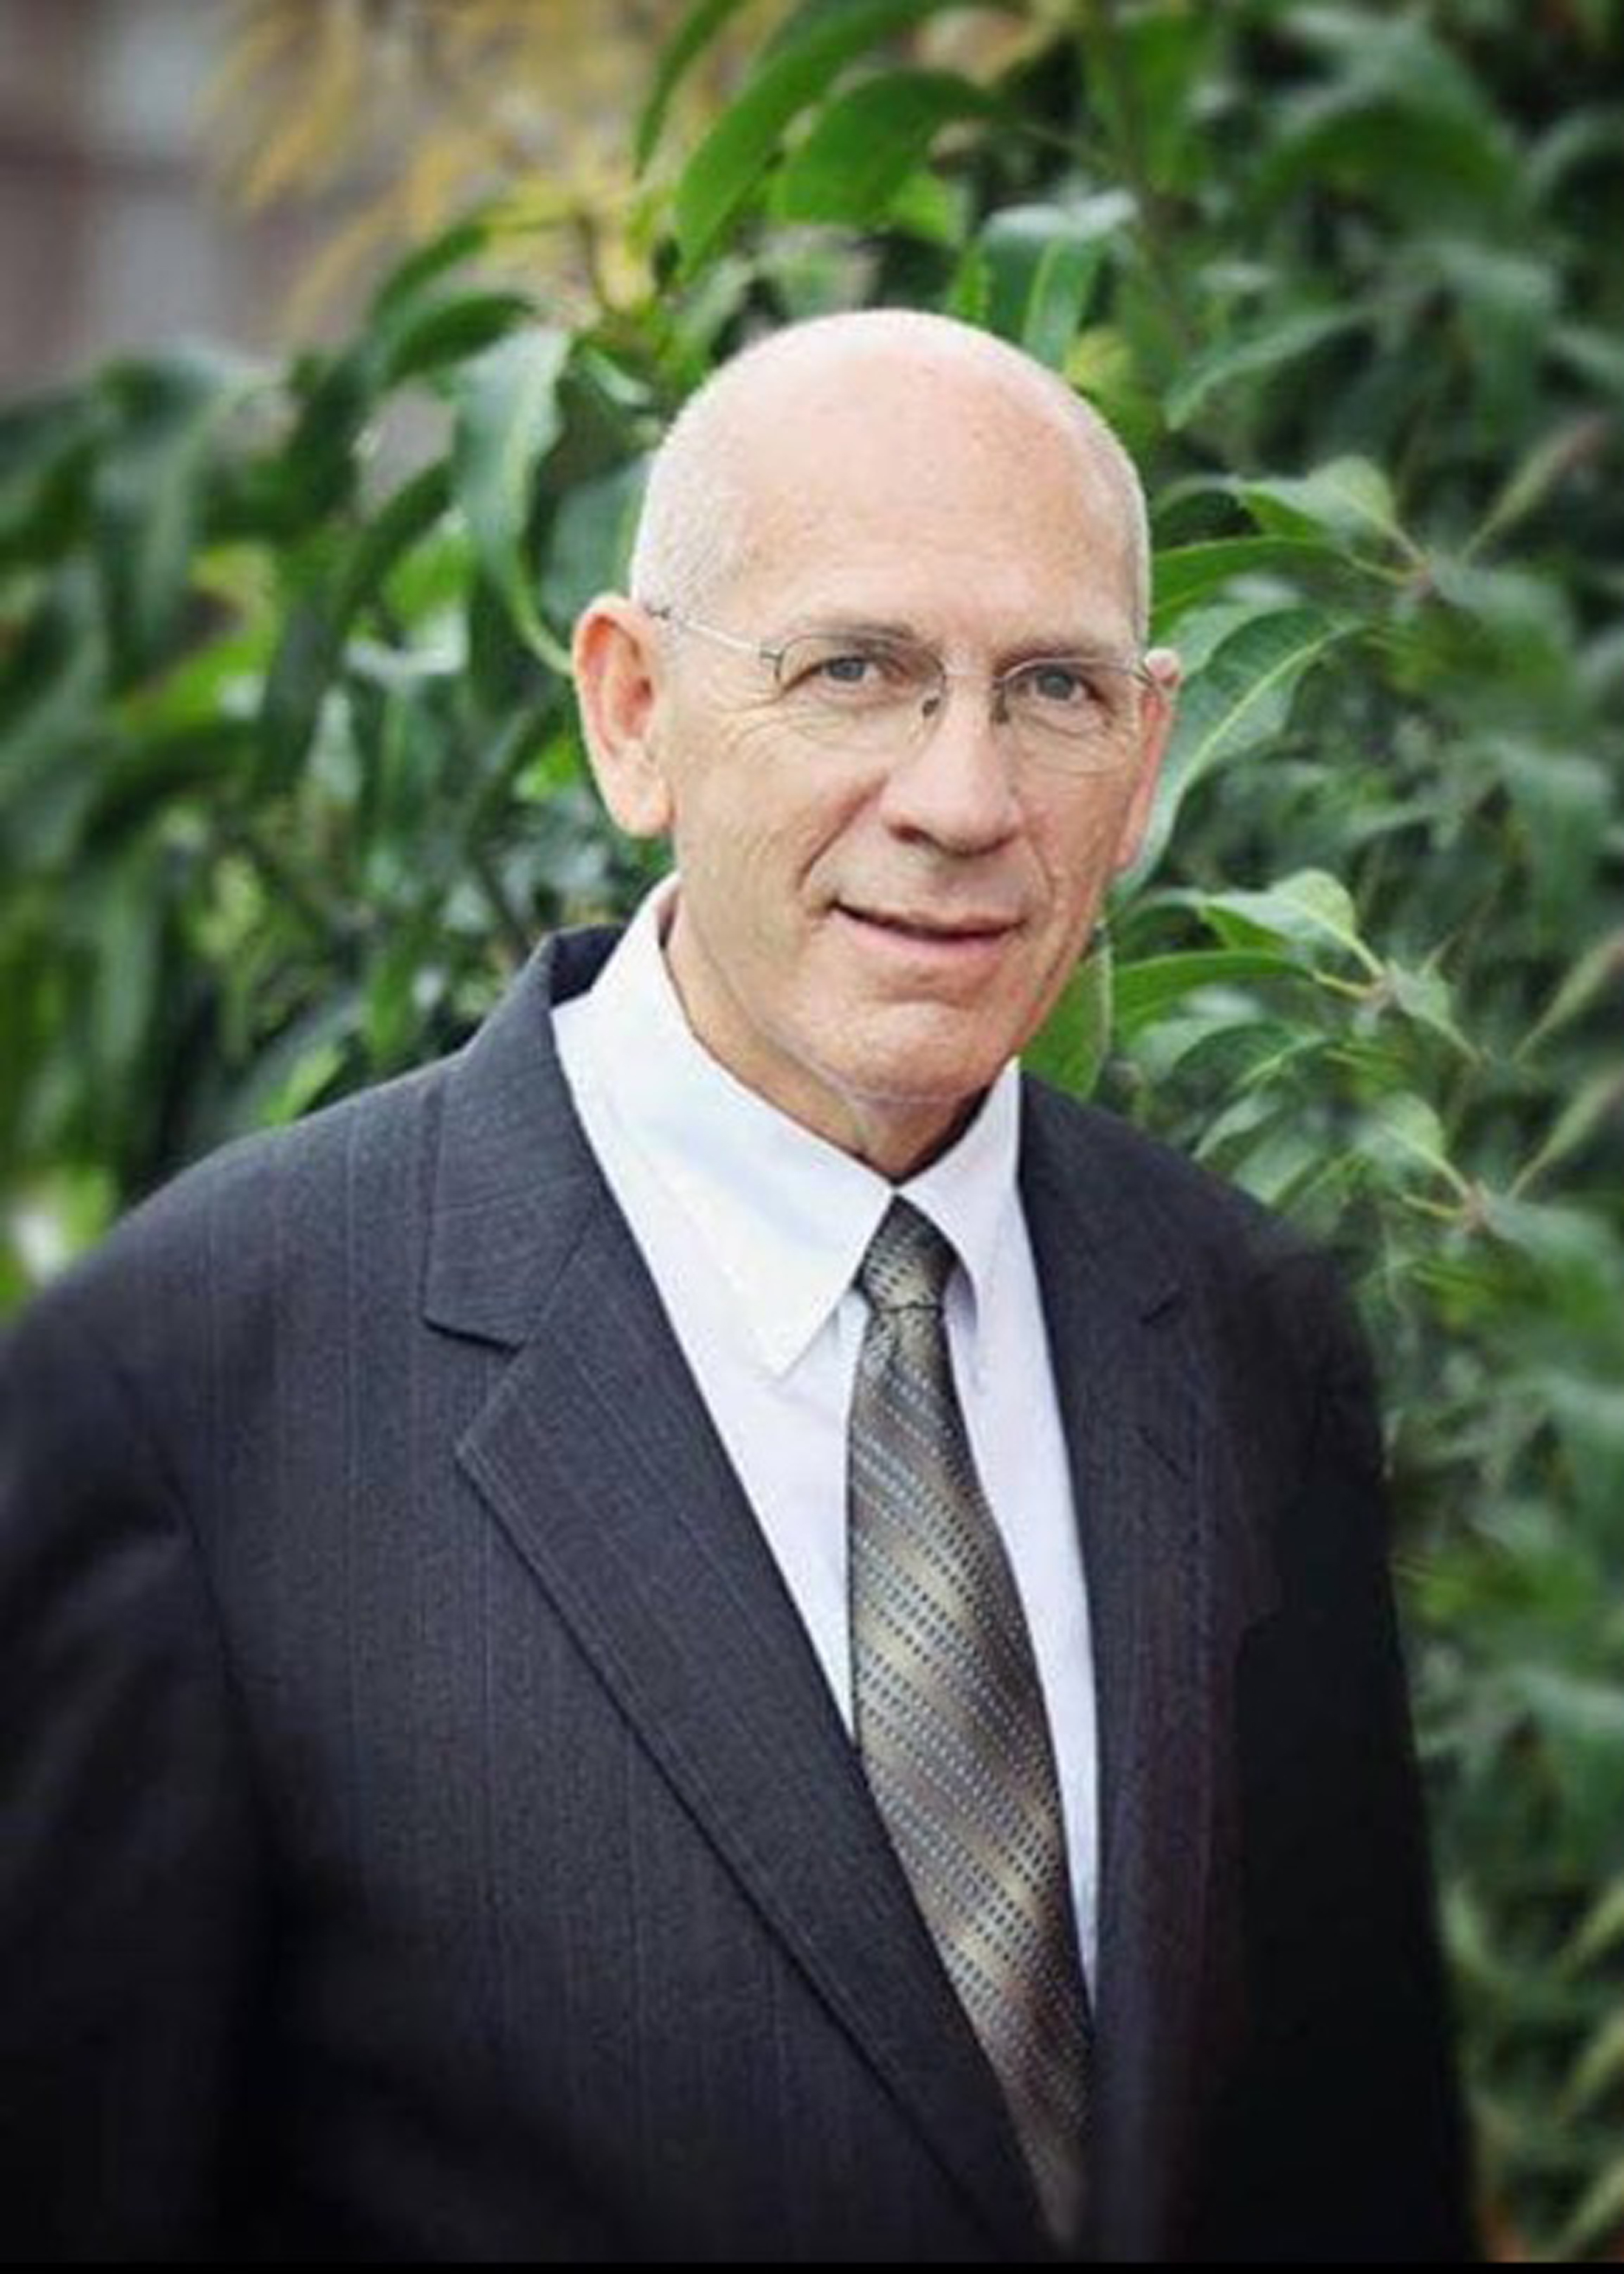 """Mel J. Palmer, who worked as a high school seminary teacher and now serves in The Gila Valley Arizona Temple presidency, was the """"most influential teacher"""" in the life of one of his student's, Elder K. Mark Frost."""